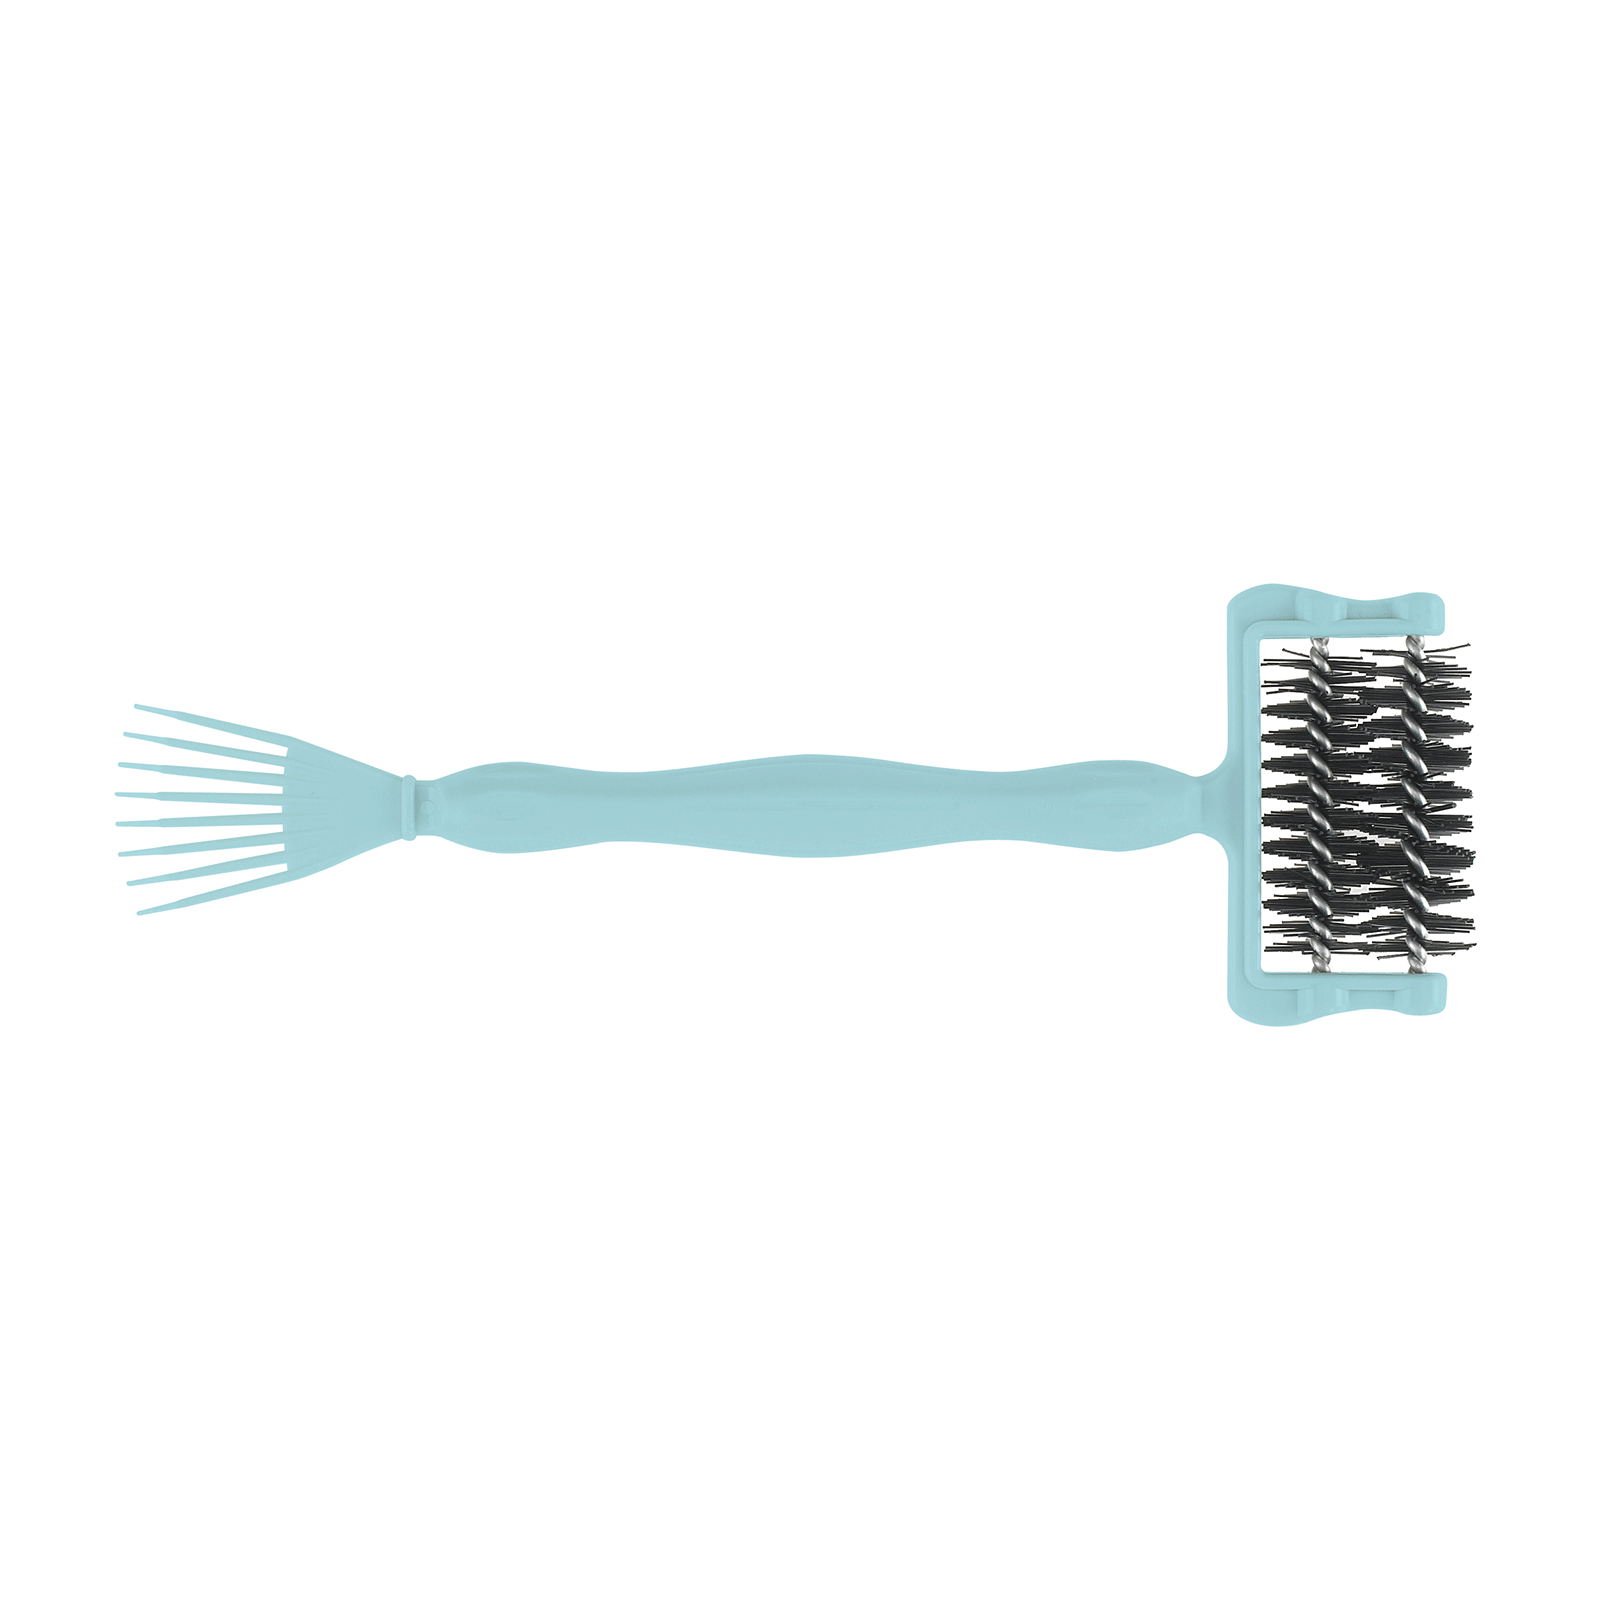 The Comb Cleaner